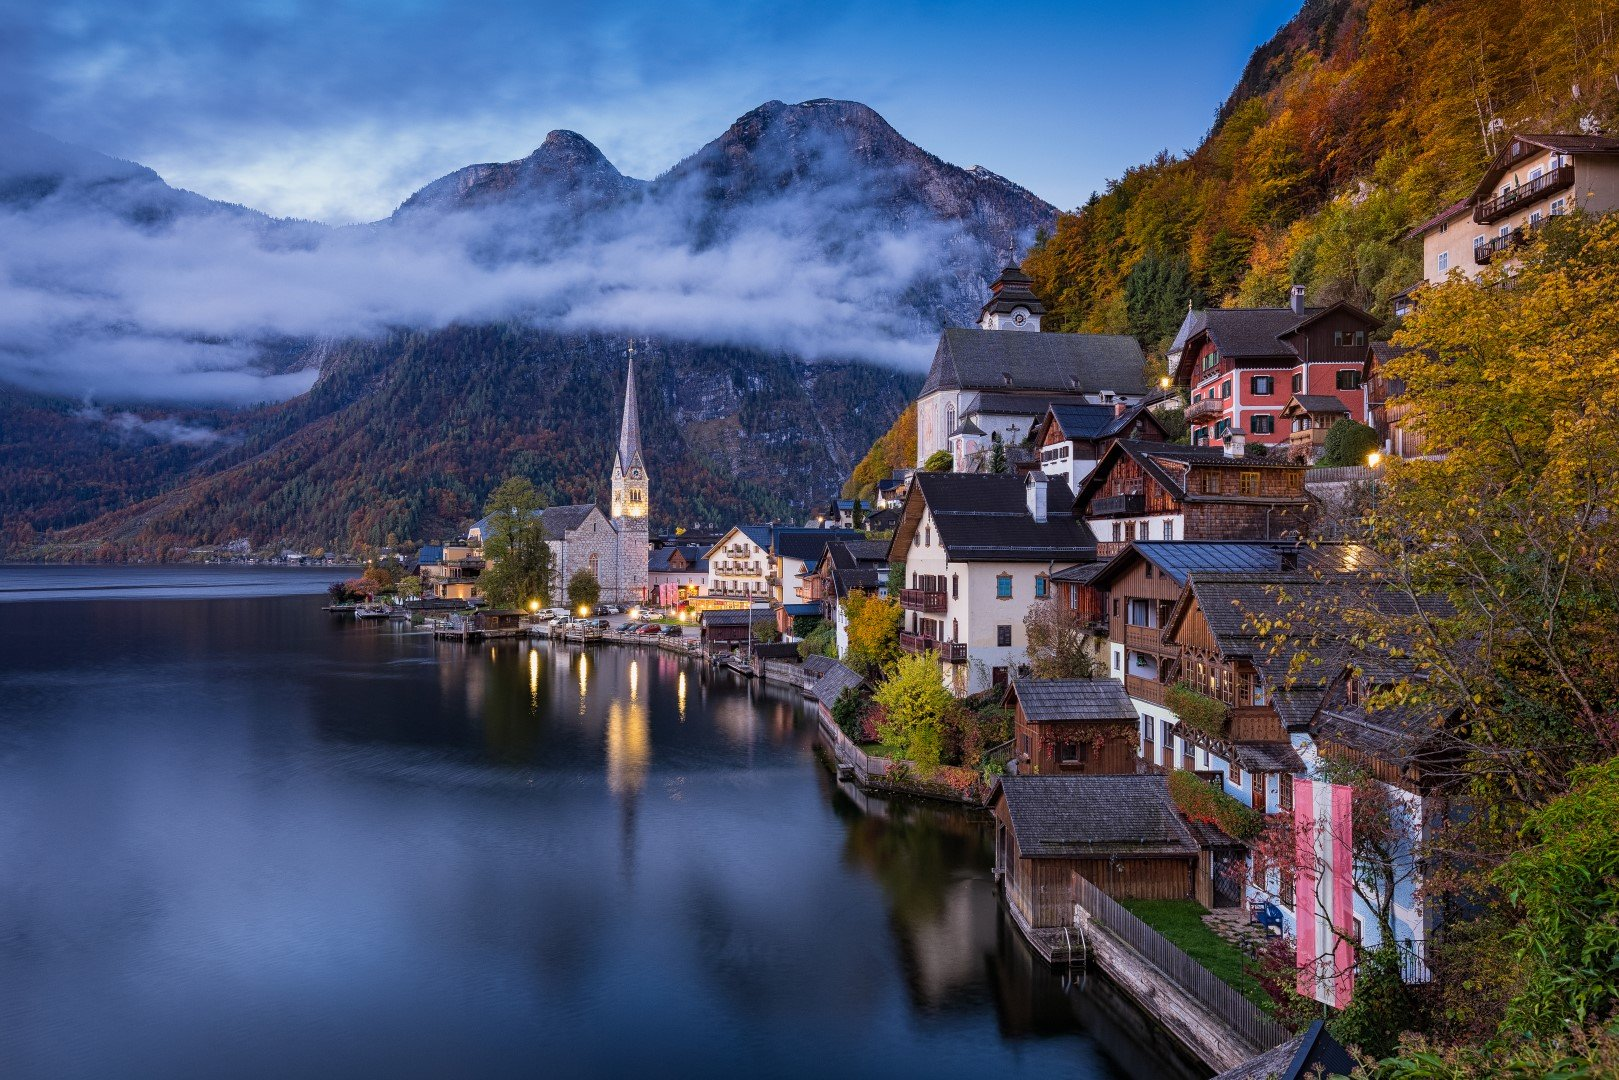 Experience the breathtaking Alpine town of Hallstatt. ***Guaranteed departure with a minimum of 4 persons***